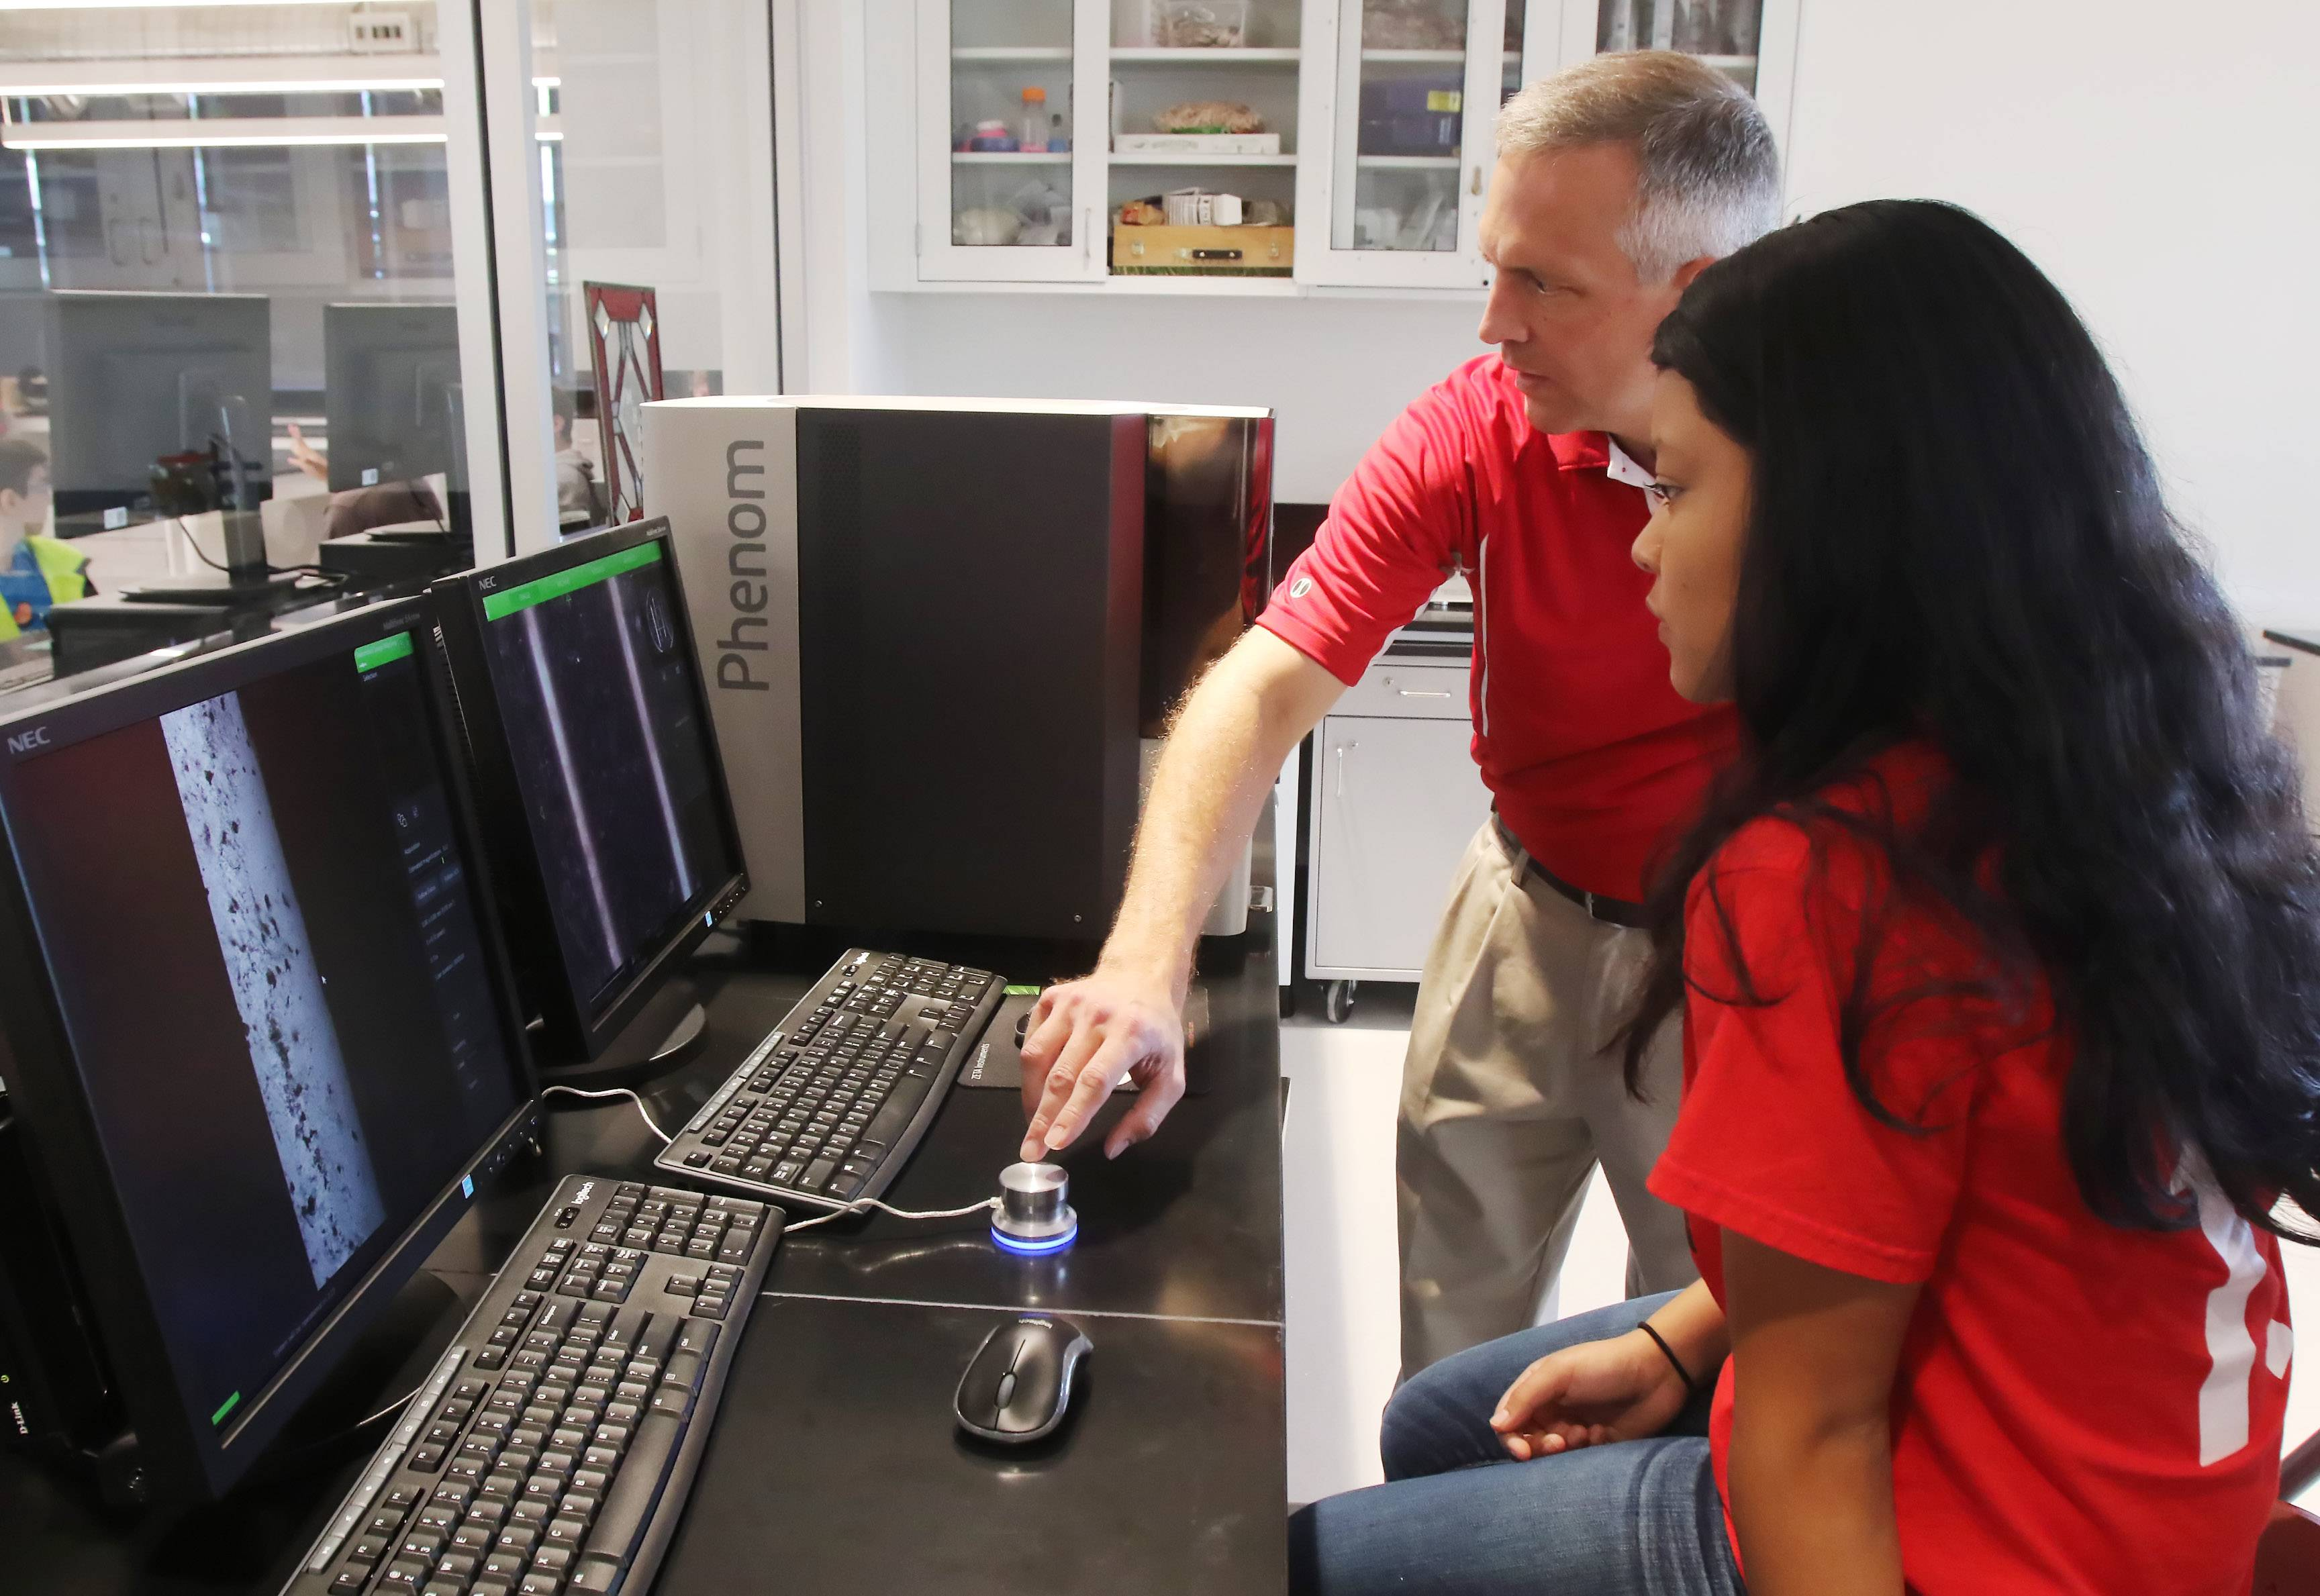 Science Department leader David Greenwood shows senior Jisel Gomez how to use a new scanning electron telescope Tuesday at Mundelein High School. The device can be found in a newly completed wing dedicated to science, technology, engineering and math education.